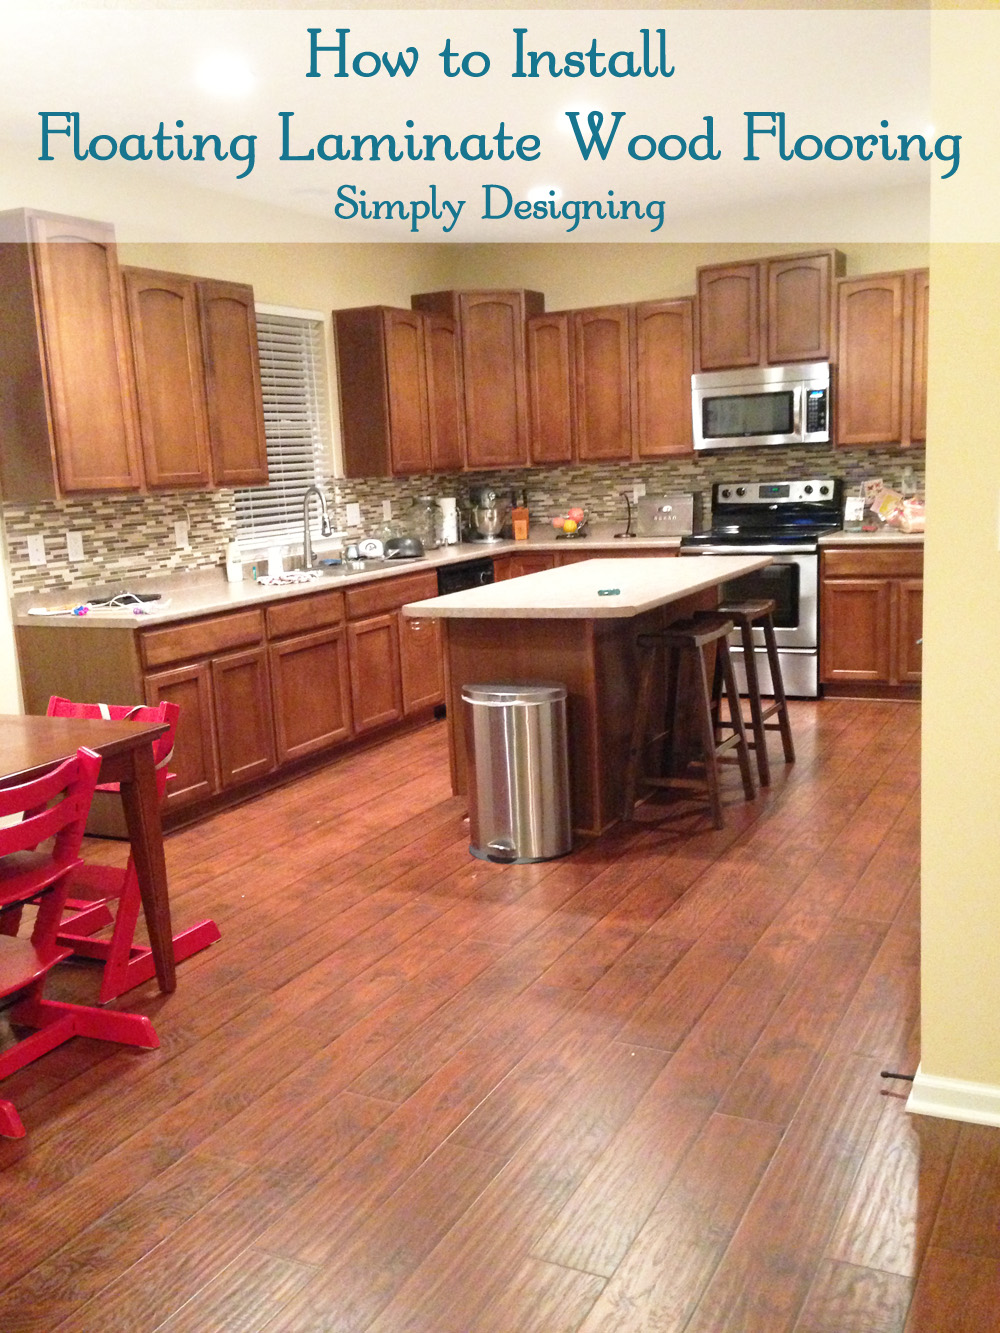 Laminate Flooring In Kitchens How To Install Floating Wood Laminate Flooring Part 1 The